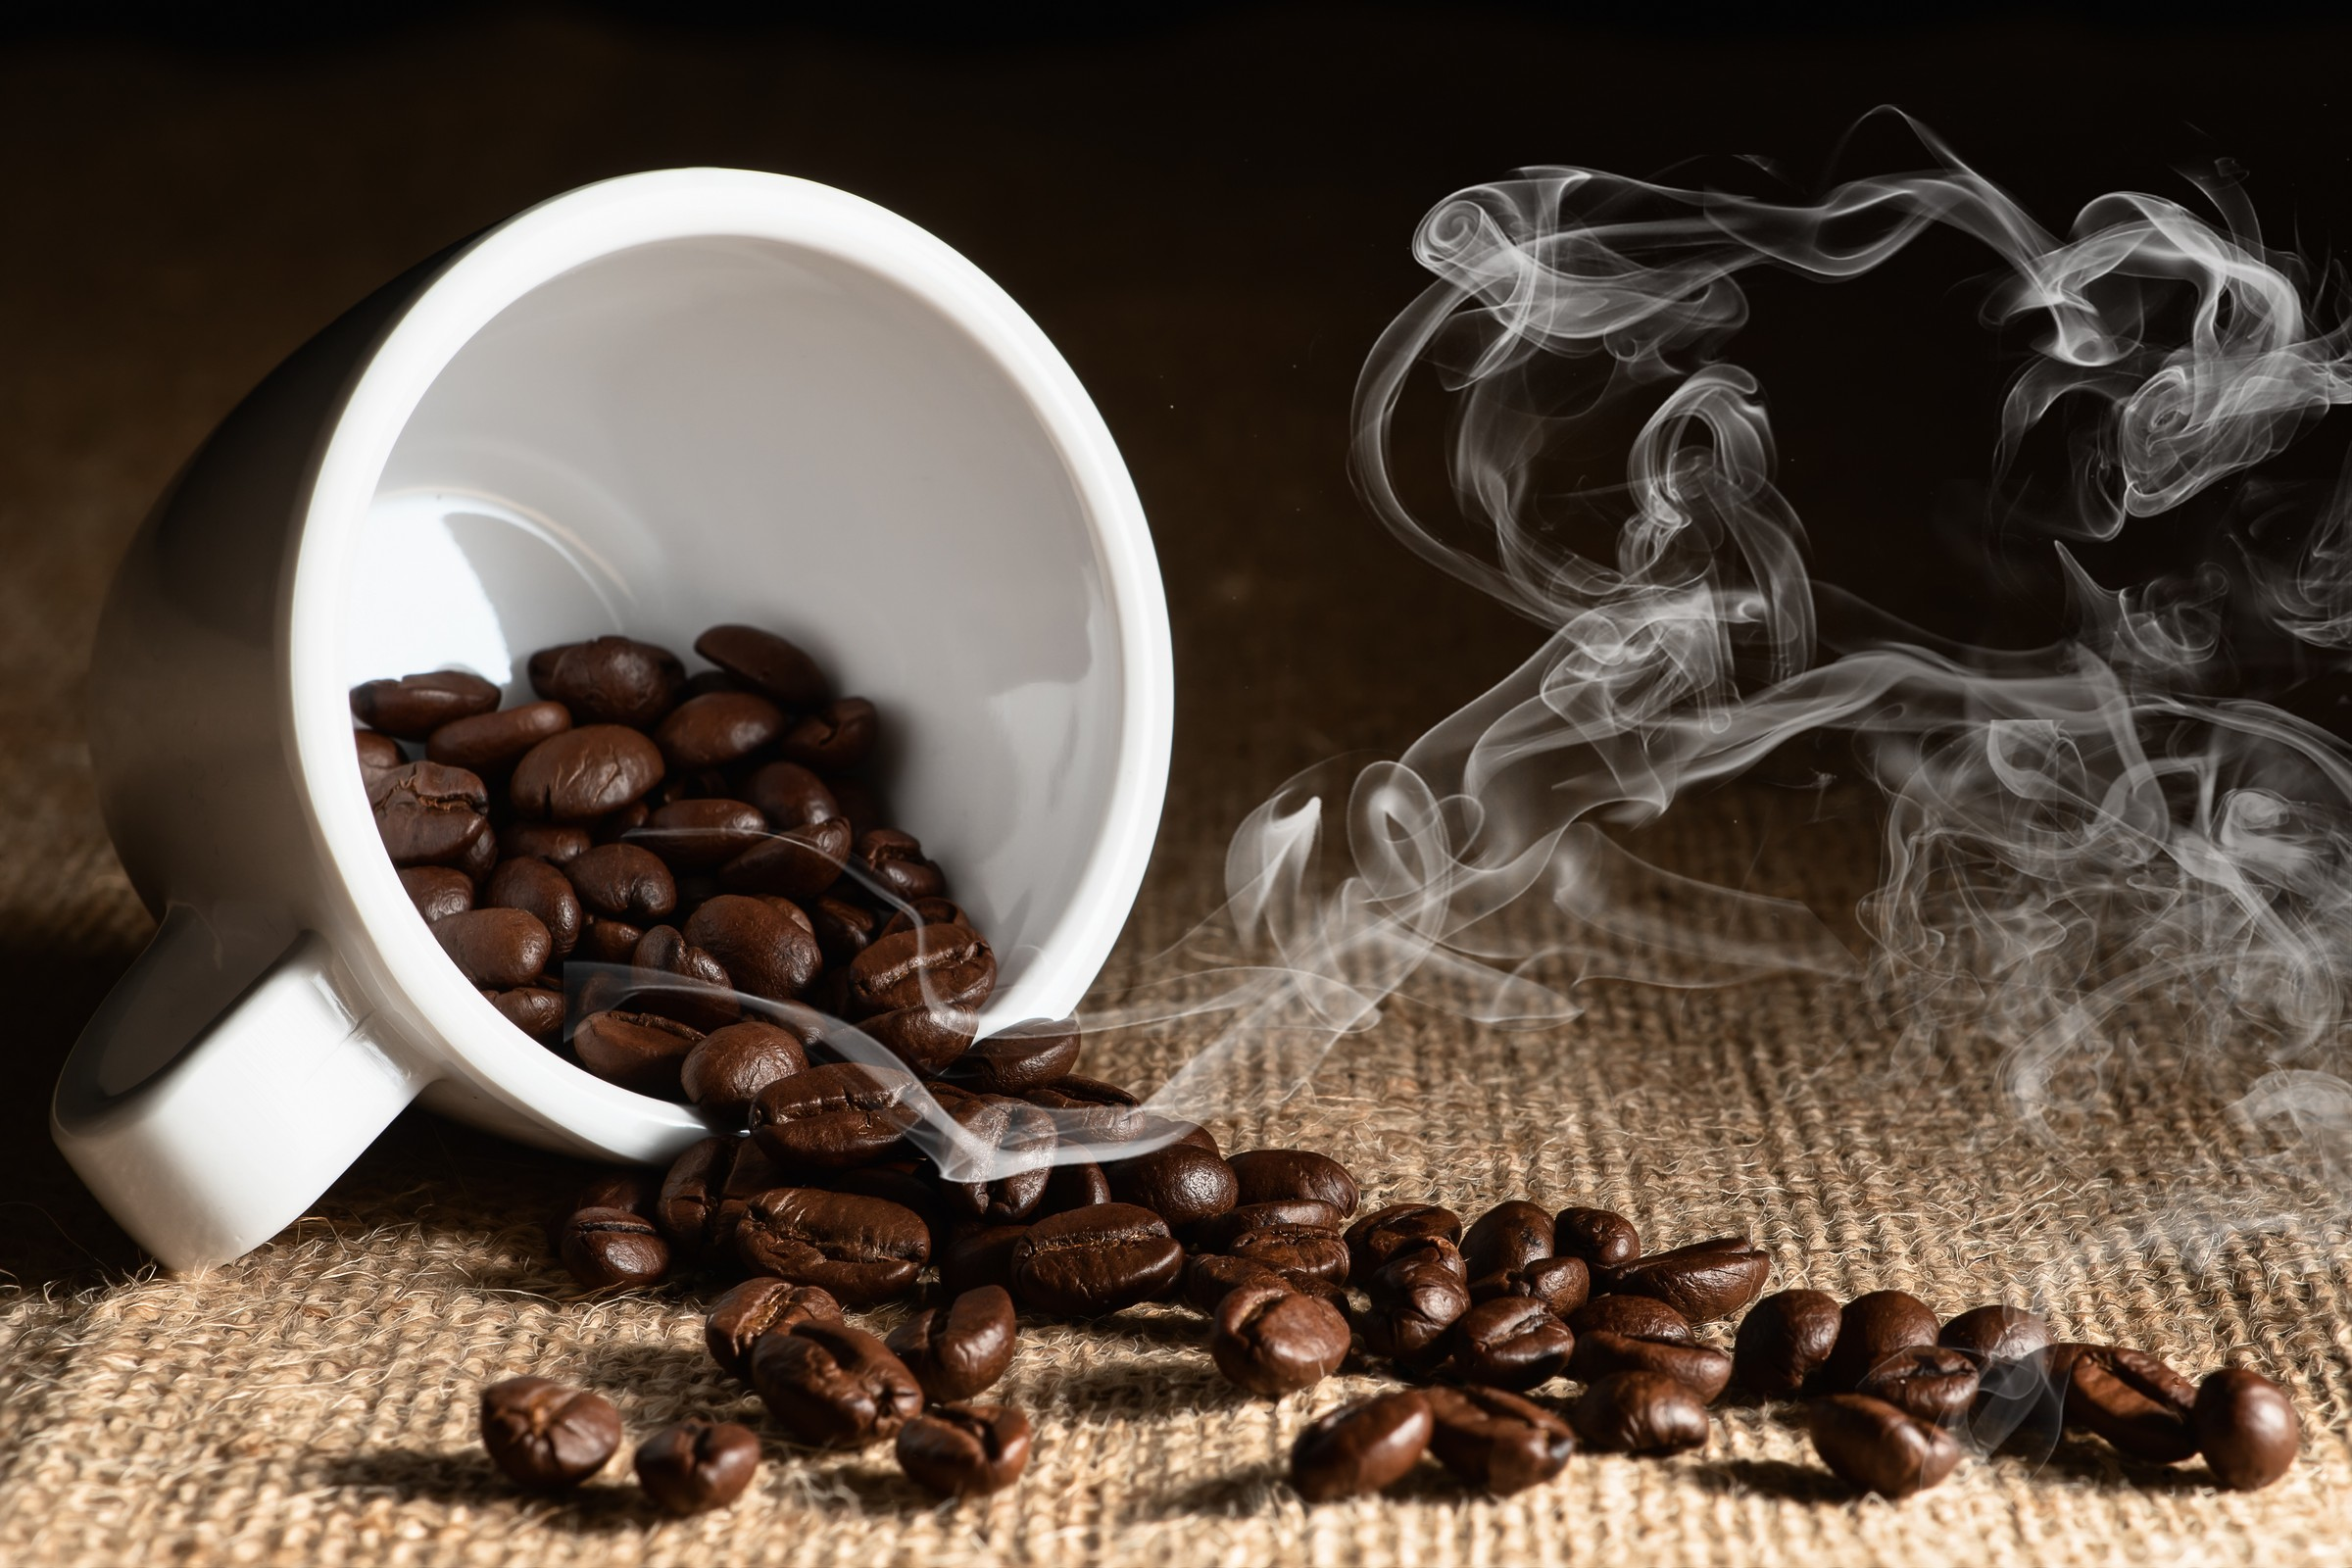 San Francisco Bay Area Coffee Equipment   Gourmet Office Coffee   Workplace Refreshment Services